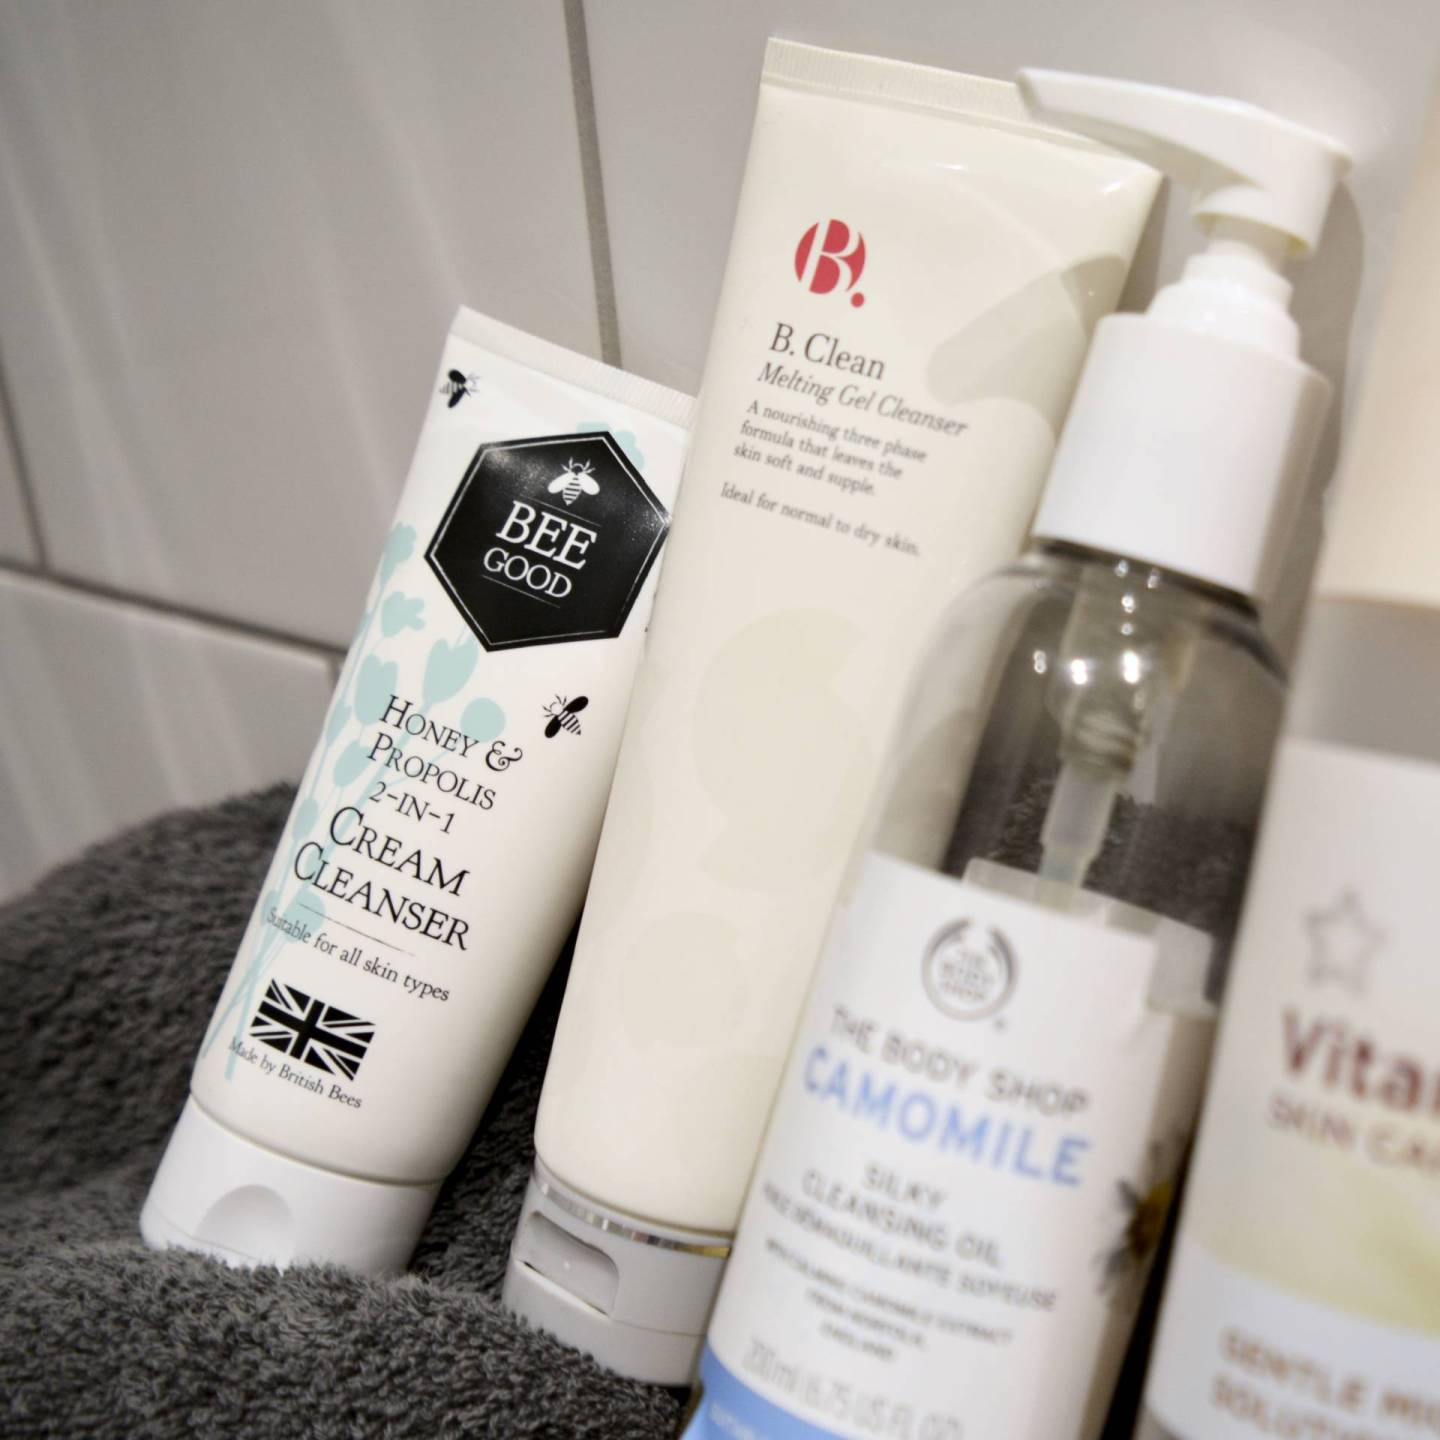 5 best budget cleansers for sensitive skin - Bee Good Honey & Propolis 3-in-1 Cleanser // Talonted Lex